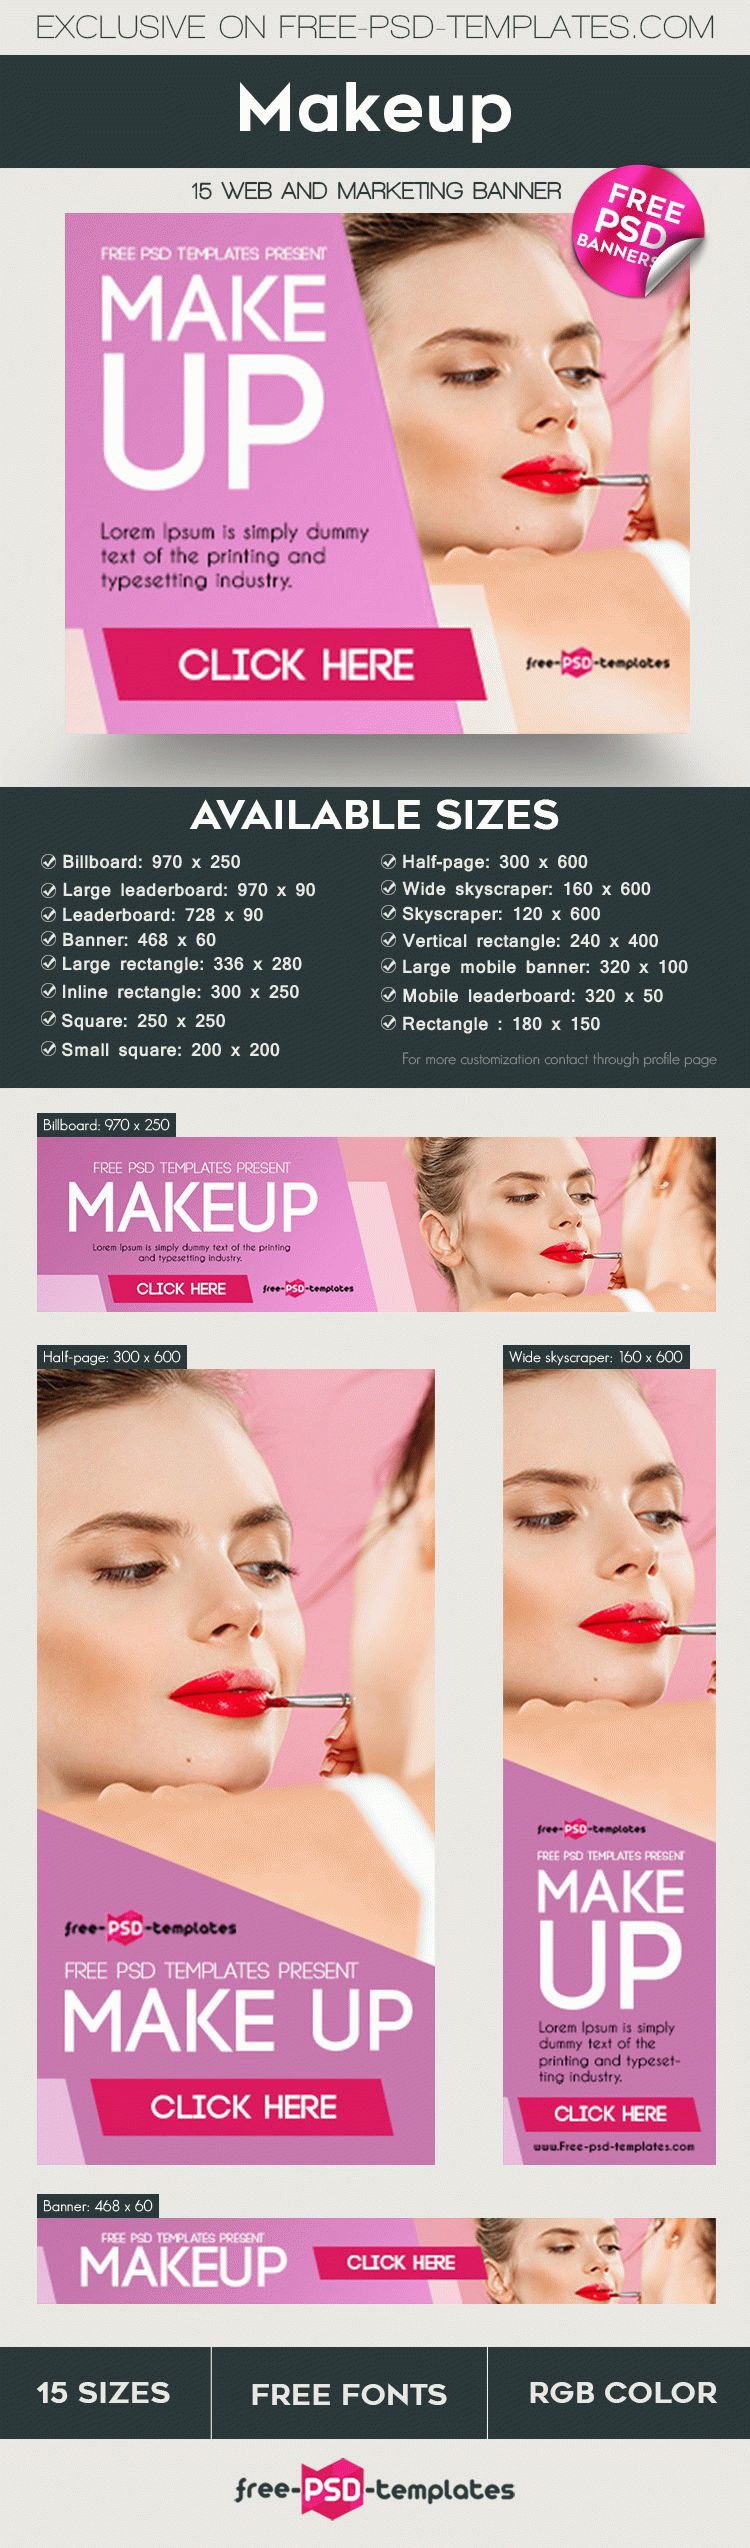 You are welcome to download our new freebie – 15 Free Makeup Banners Collection in PSD. These easy-to-customize banner PSD templates will perfectly fit the ...